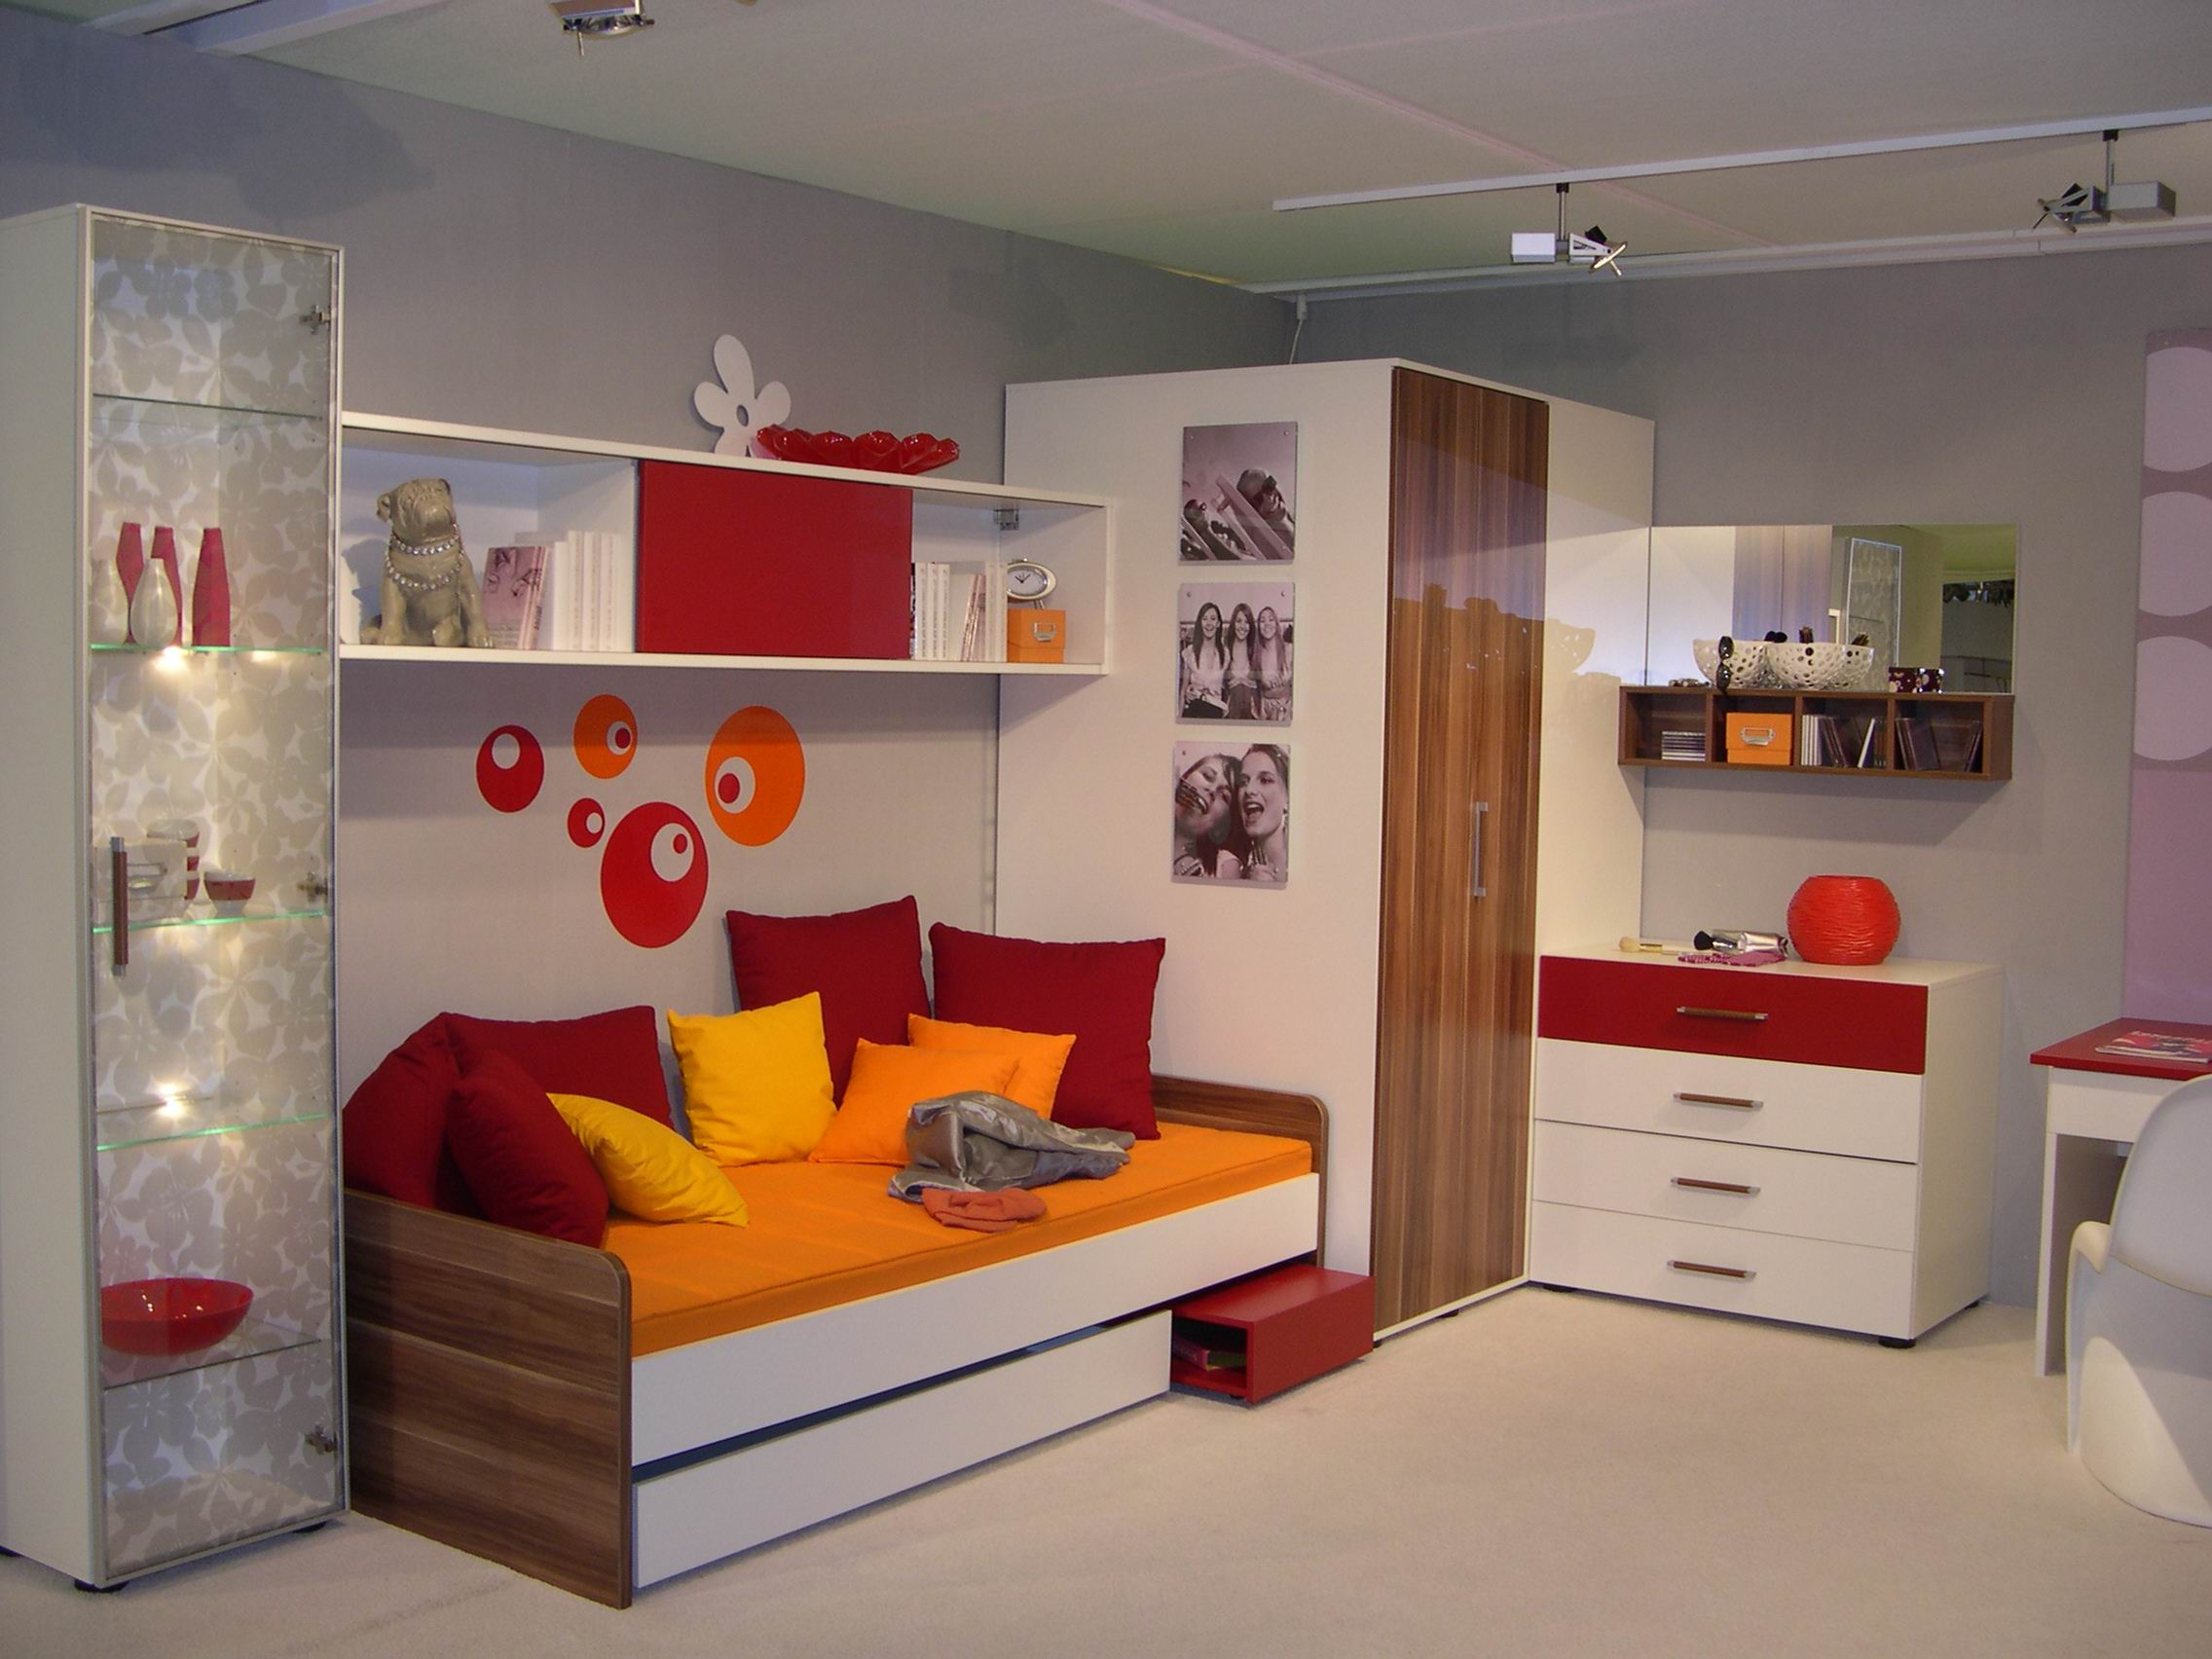 Idee deco chambre ado fille a faire soi meme for Idee deco salon 2016